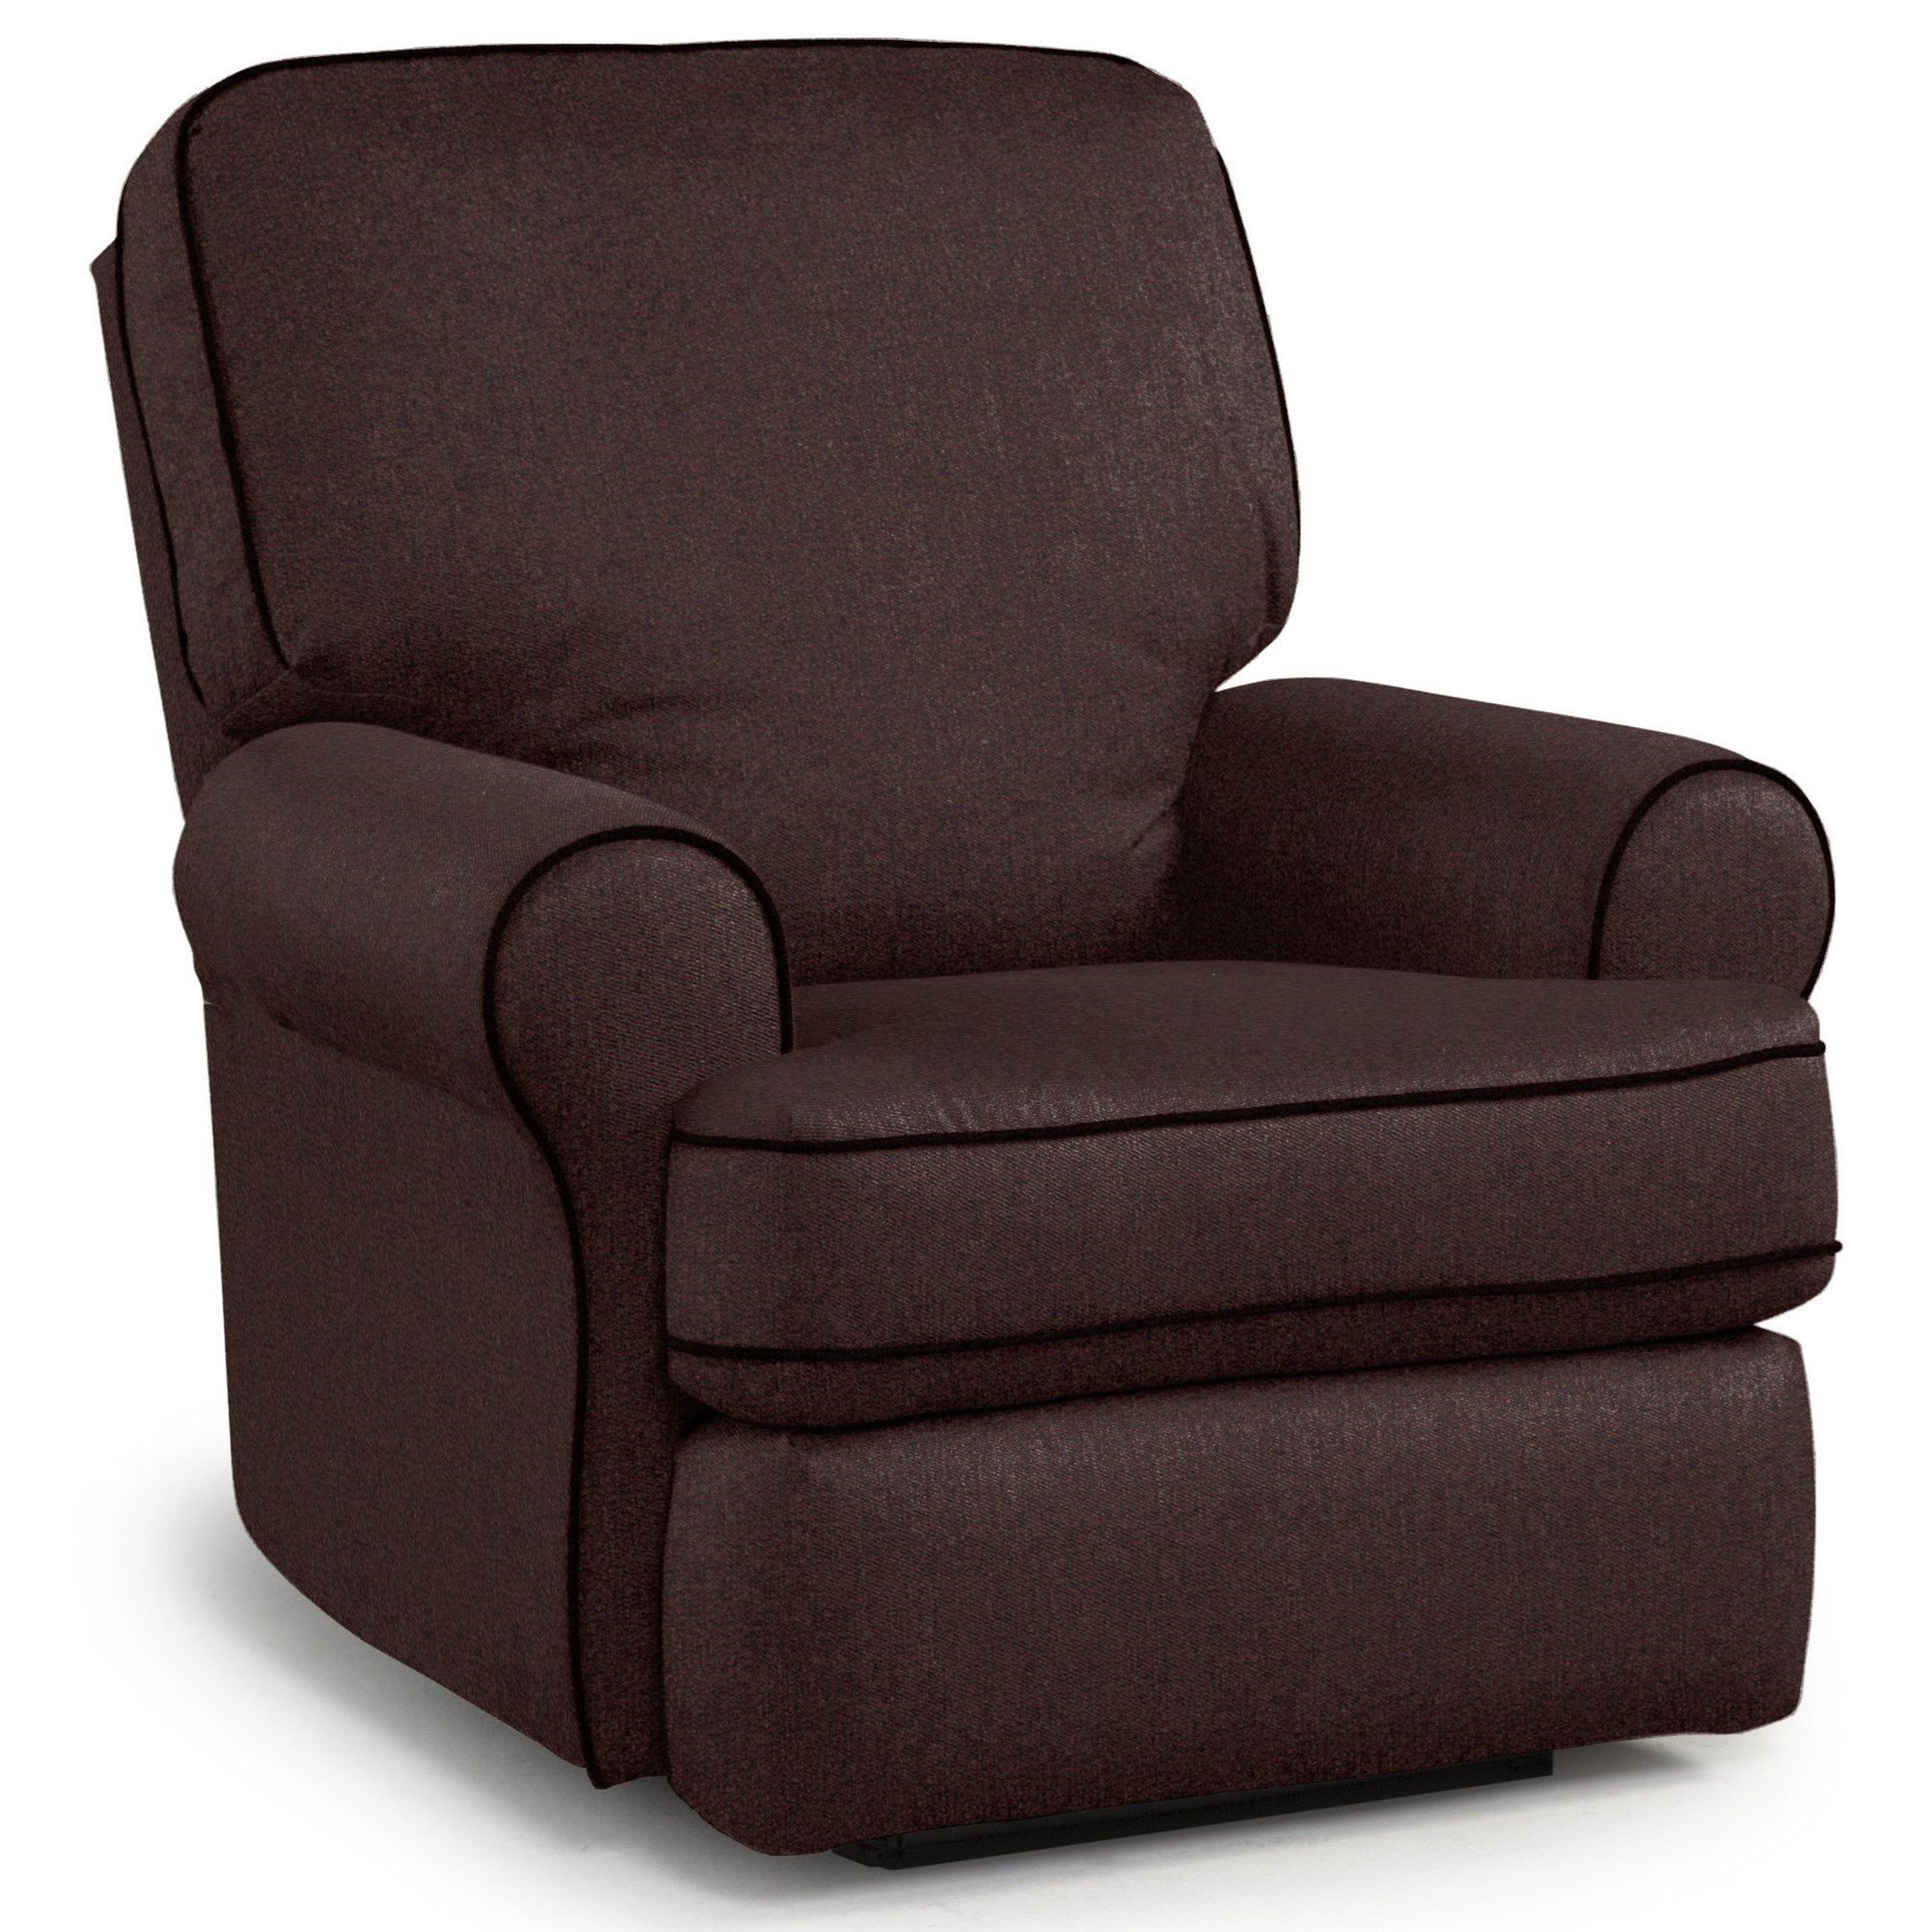 Tryp Swivel Glider Recliner by Best Home Furnishings at Lucas Furniture & Mattress